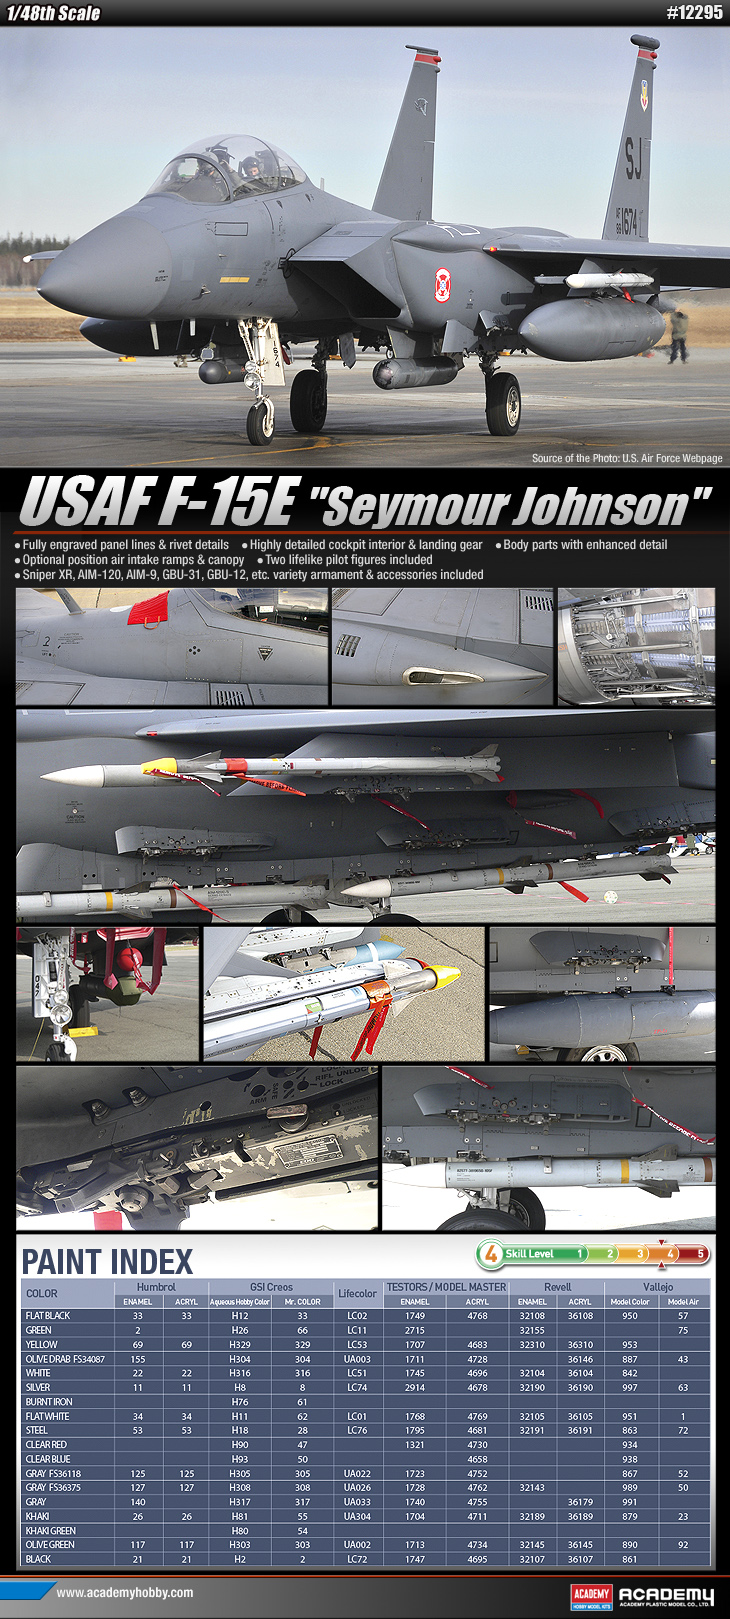 Academy 12295 1:48 F-15E Seymour Johnson USAF Fighter This is Academy 12295 1/48 F15E Seymour Johnson USAF Fighter. The F-15E was designed in the 1980s for long-range, high speed interdiction without relying on escort or electronic warfare aircraft. United States Air Force (USAF) F-15E Strike Eagles can be distinguished from other U.S. Eagle variants by darker camouflage and conformal fuel tanks mounted along the engine intakes. Two-seat all-weather long-range strike and ground-attack aircraft for the USAF. Its key features are: Fully engraved panel lines and rivet details Two highly detailed pilot figures included Optional position air intake ramps and canopy Sniper XR, AIM-120, AIM-9, GBU-31, GBU-12 and many more armament and accessories includedCondition: Factory NewOperational Status: FunctionalThis item is brand new from the factory.Original Box: YesManufacturer: AcademyModel Number: 12295MSRP: $56.00Category 1: Model KitsCategory 2: 1:48 ScaleAvailability: Ships in 1 Business Day!The Trainz SKU for this item is P11998276. Track: 11998276 - No Location Assigned - 001 - TrainzAuctionGroup00UNK - TDIDUNK